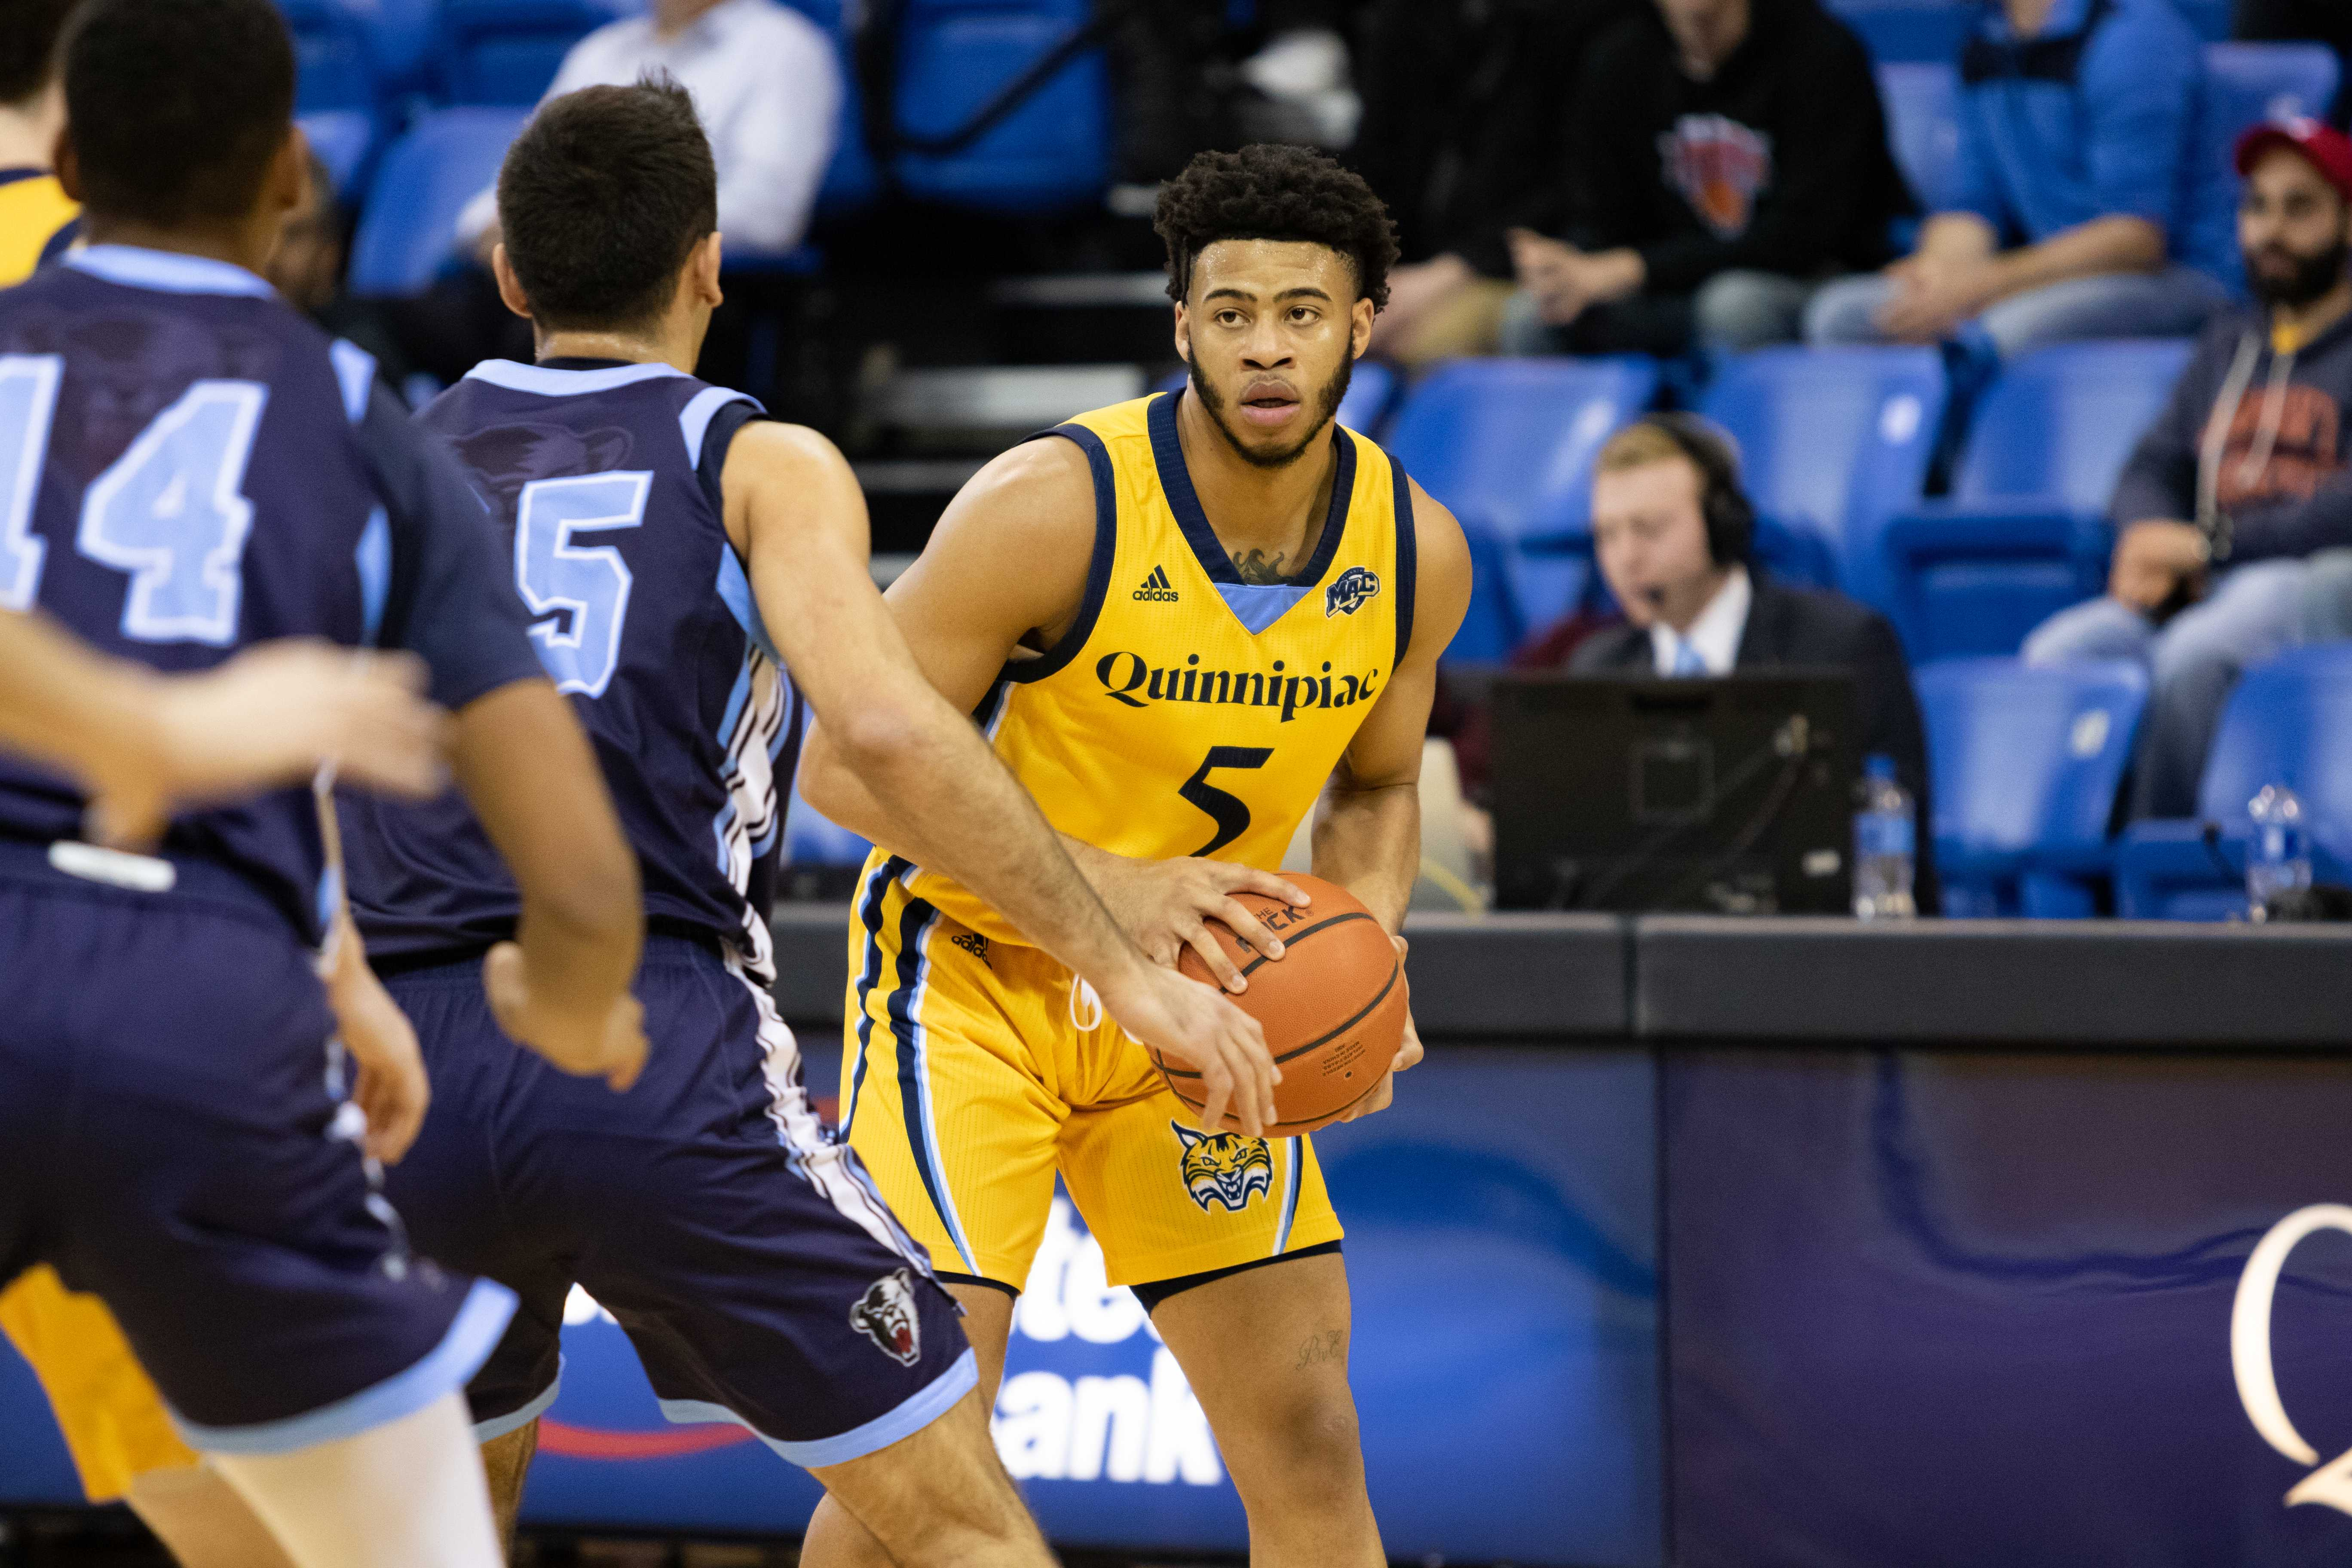 Quinnipiac men's basketball rides hot second half in win over Maine